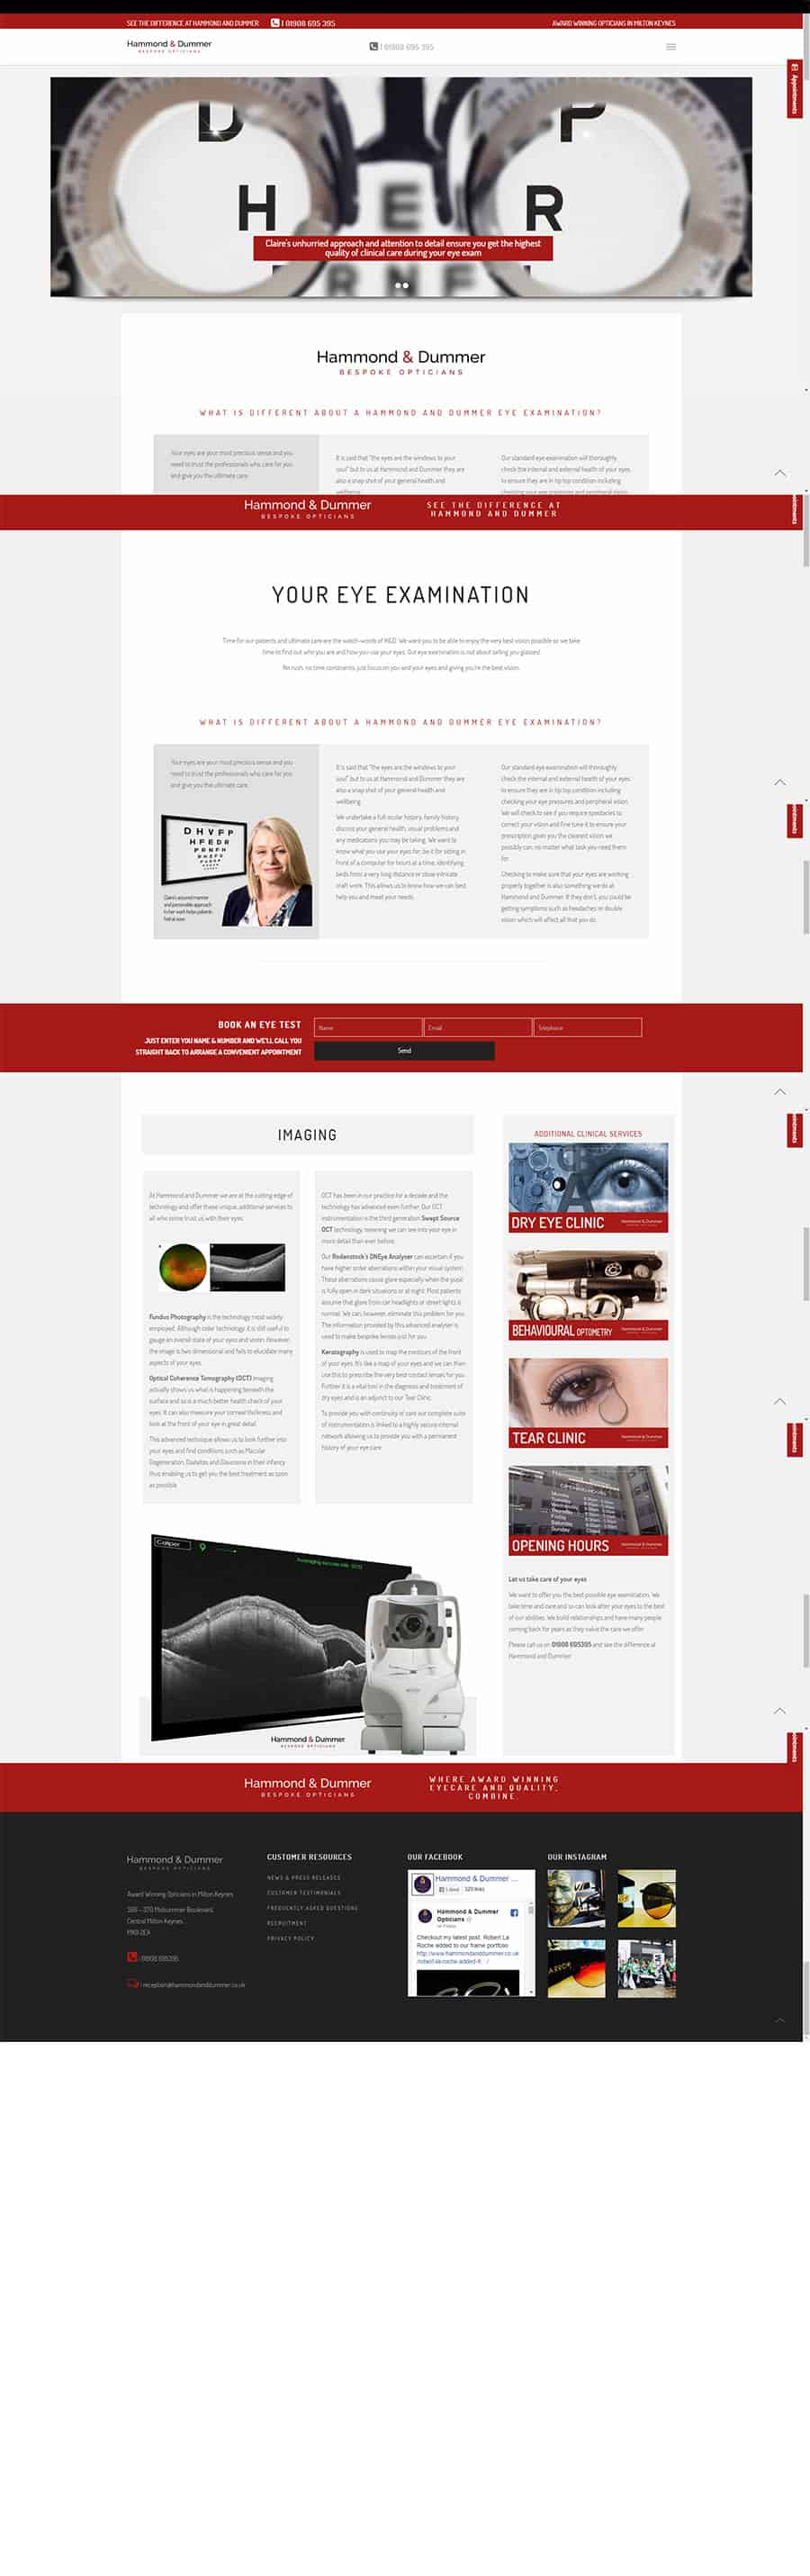 Web design screen capture